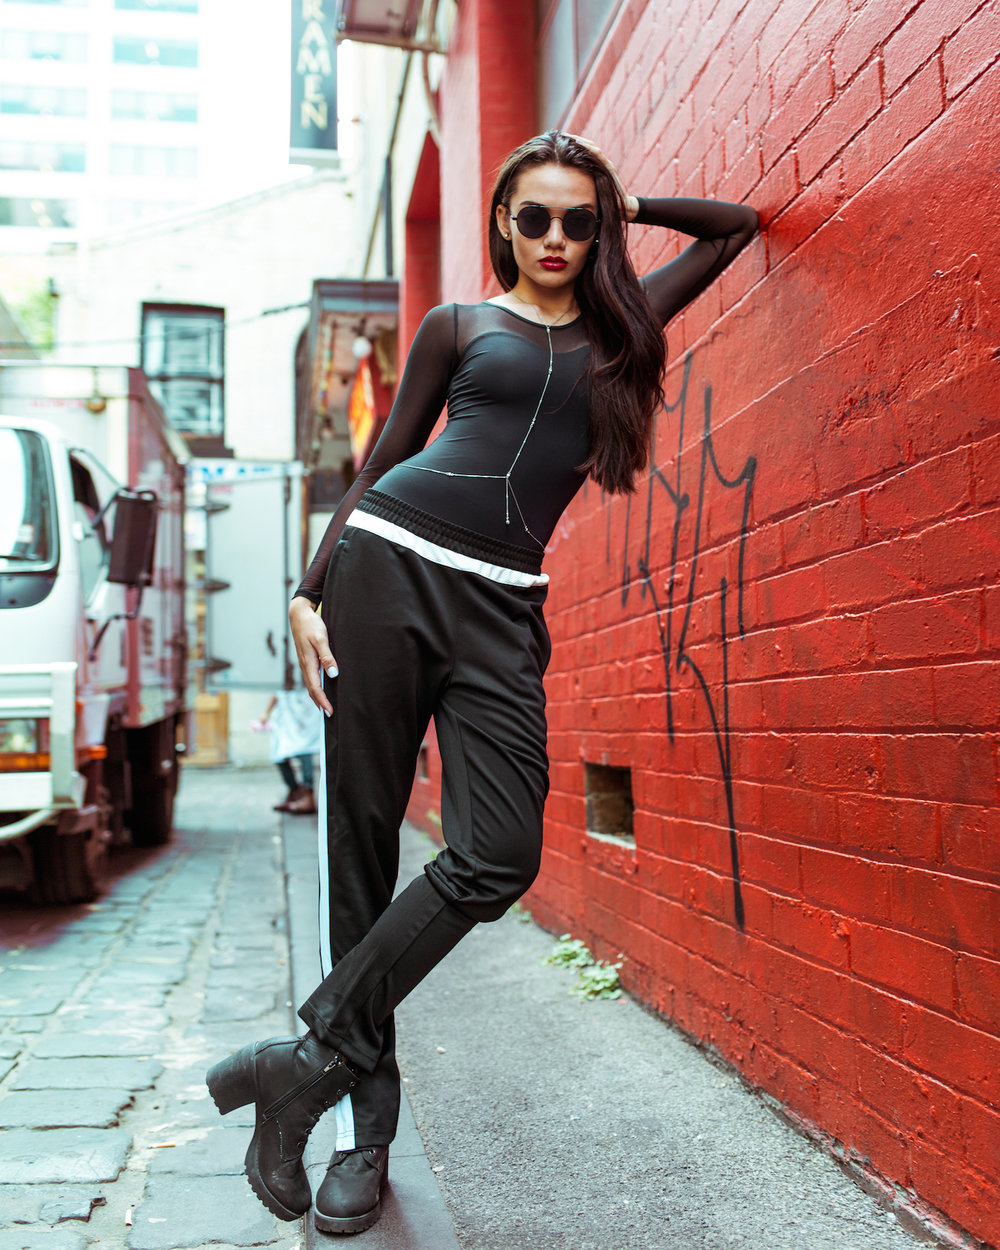 Portia wears: Energetiks  Maya Leotard  in black, and black Track Pants.